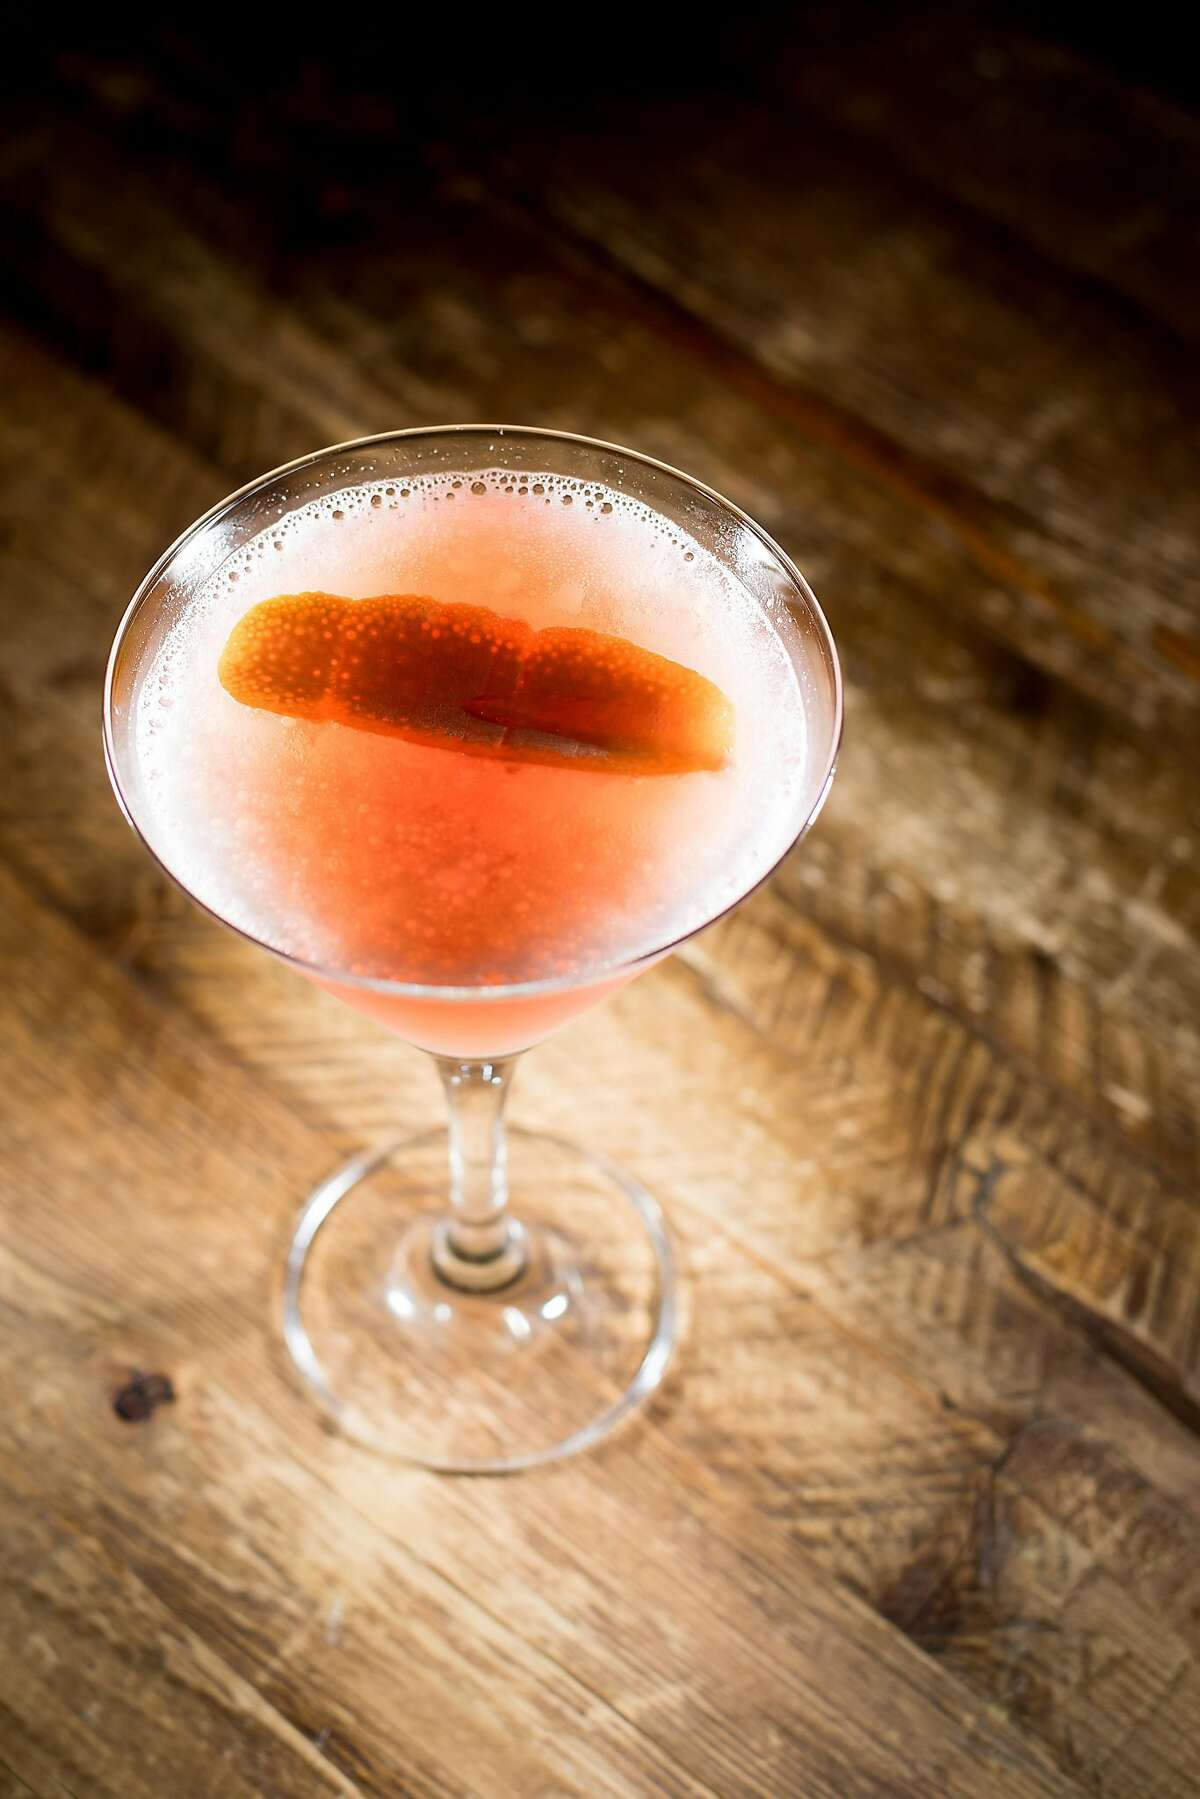 A Blinker cocktail, featuring Bourbon, grenadine and fresh squeezed grapefruit juice, rests on a table at Lucia on Thursday, February 16, 2017, in Carmel Highlands, Calif.